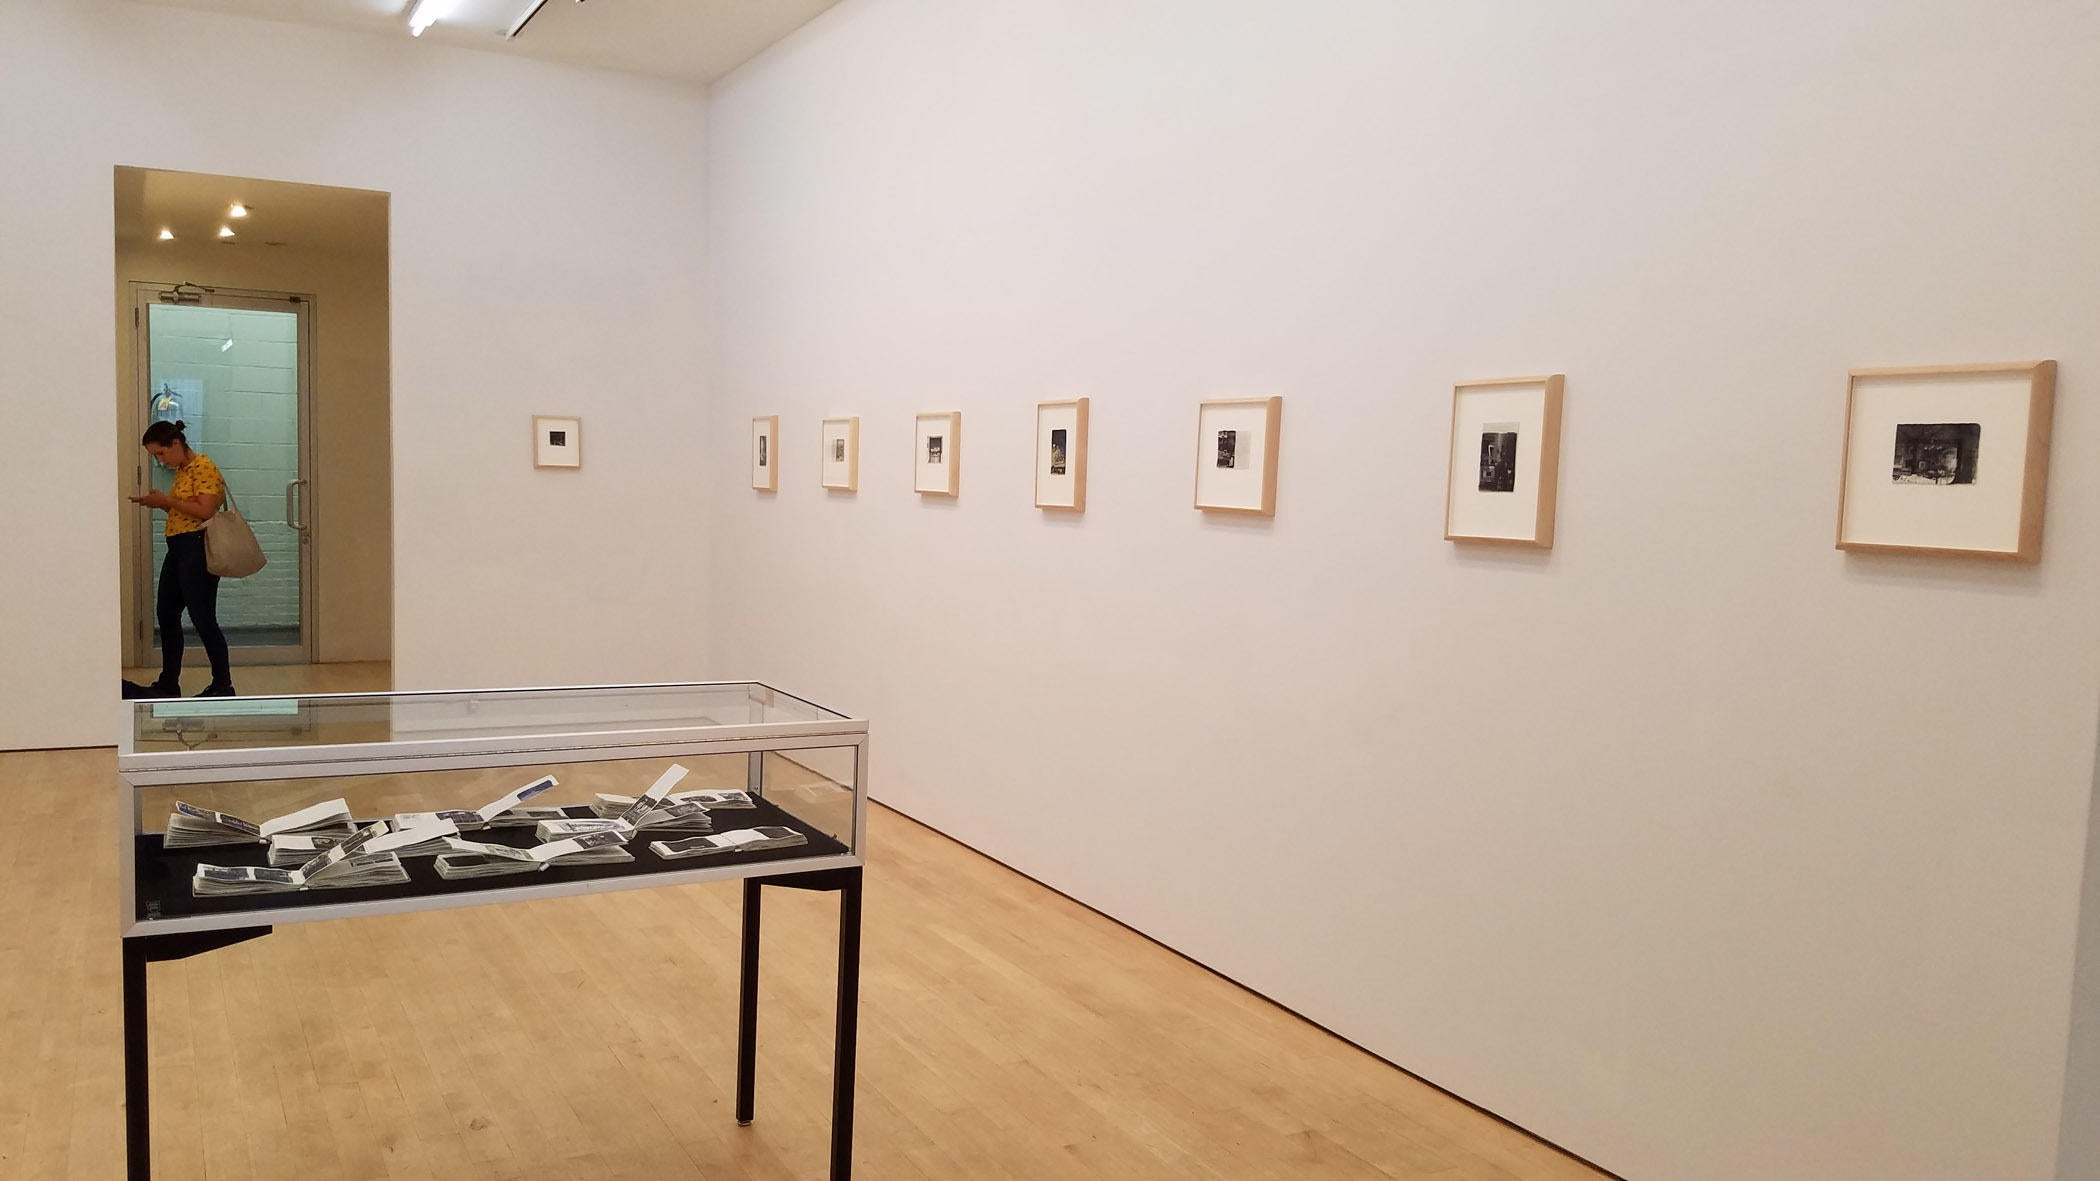 Photograph of the exhibition Charles Ritchie 16 Pages at BravinLee programs, New York, 7 September to 14 October 2017 image